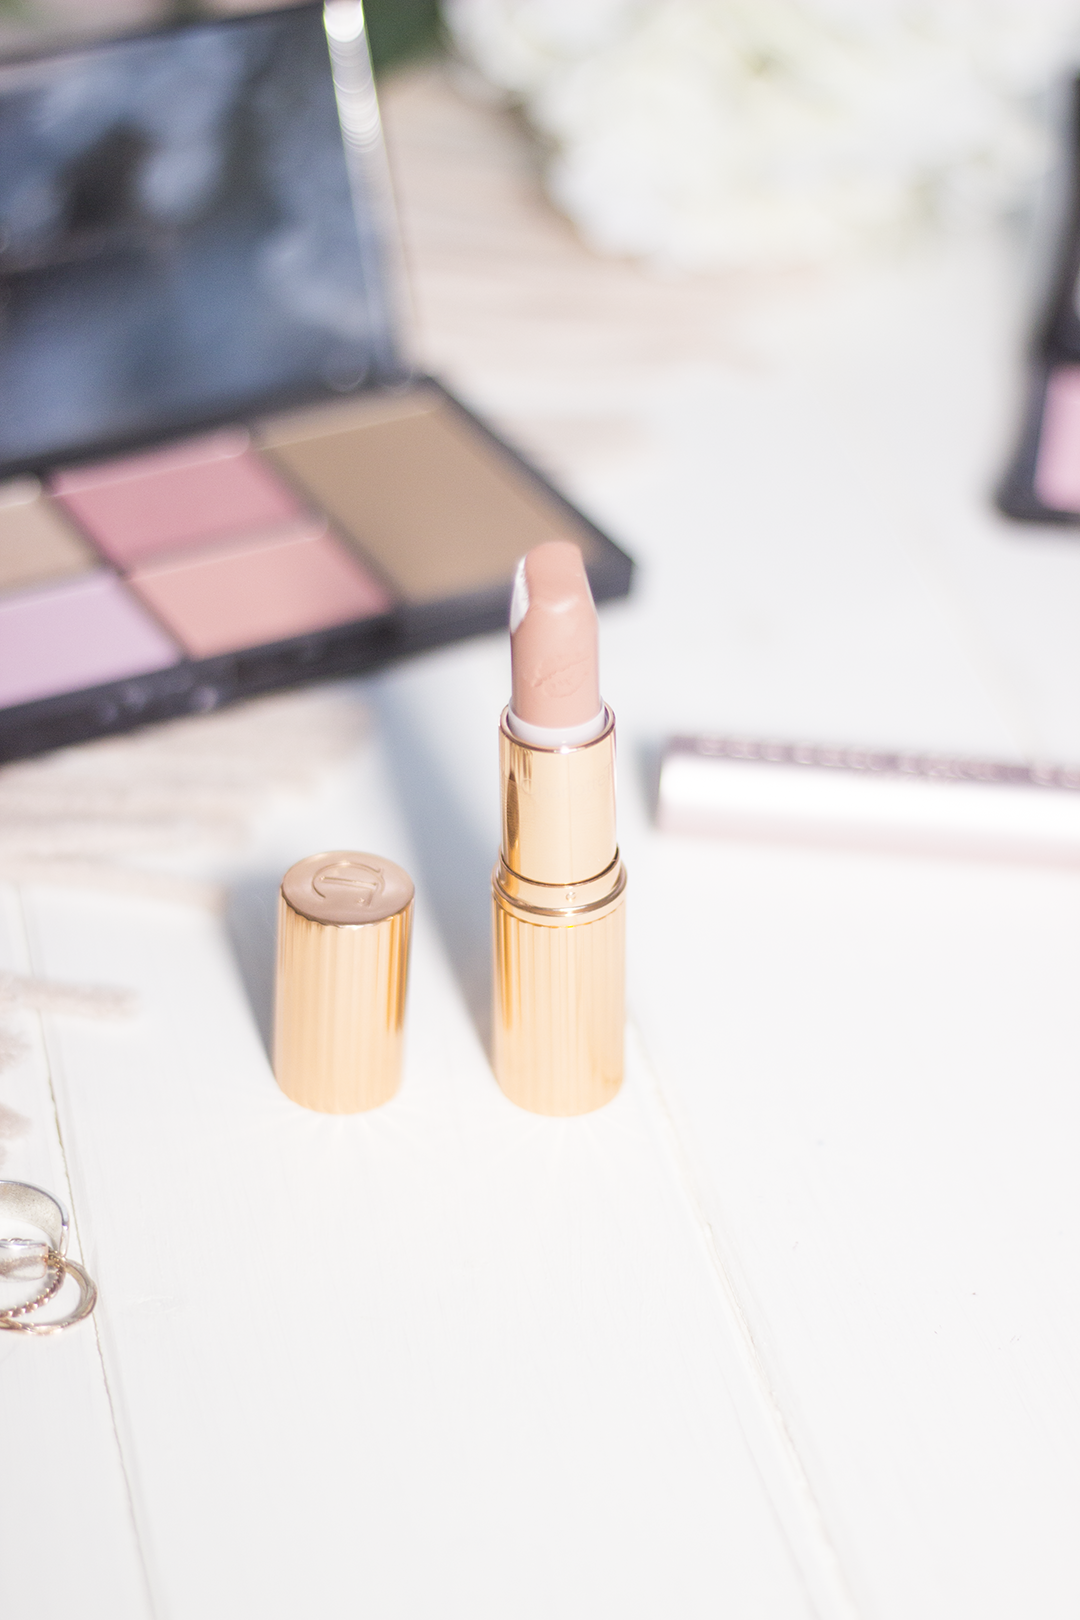 High End Beauty items Charlotte Tilbury Penelope Pink